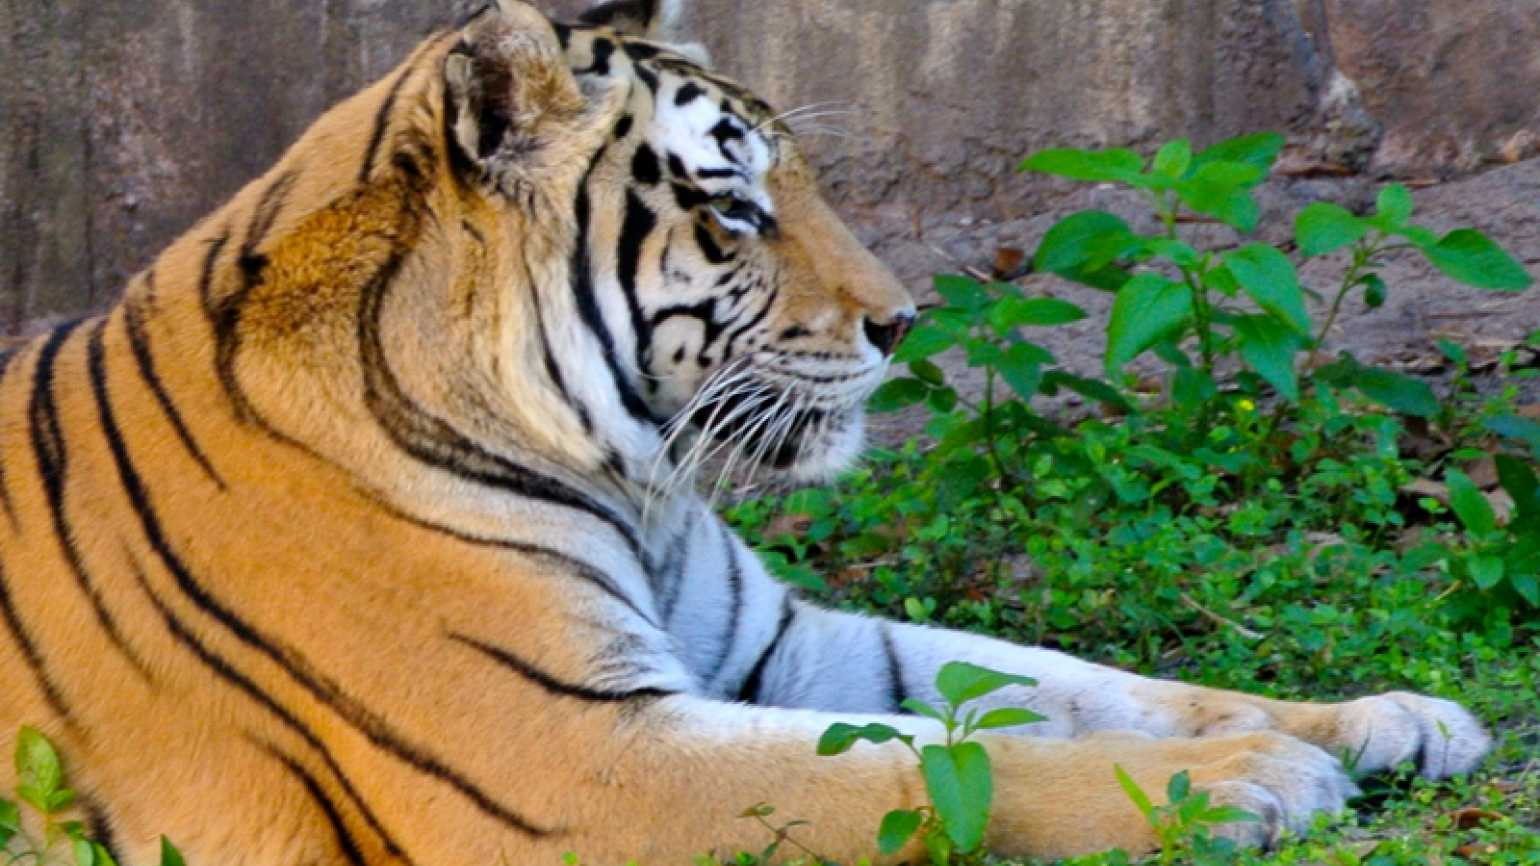 Outreach Ministries blogger Edie Melson's picture of a tiger in the grass